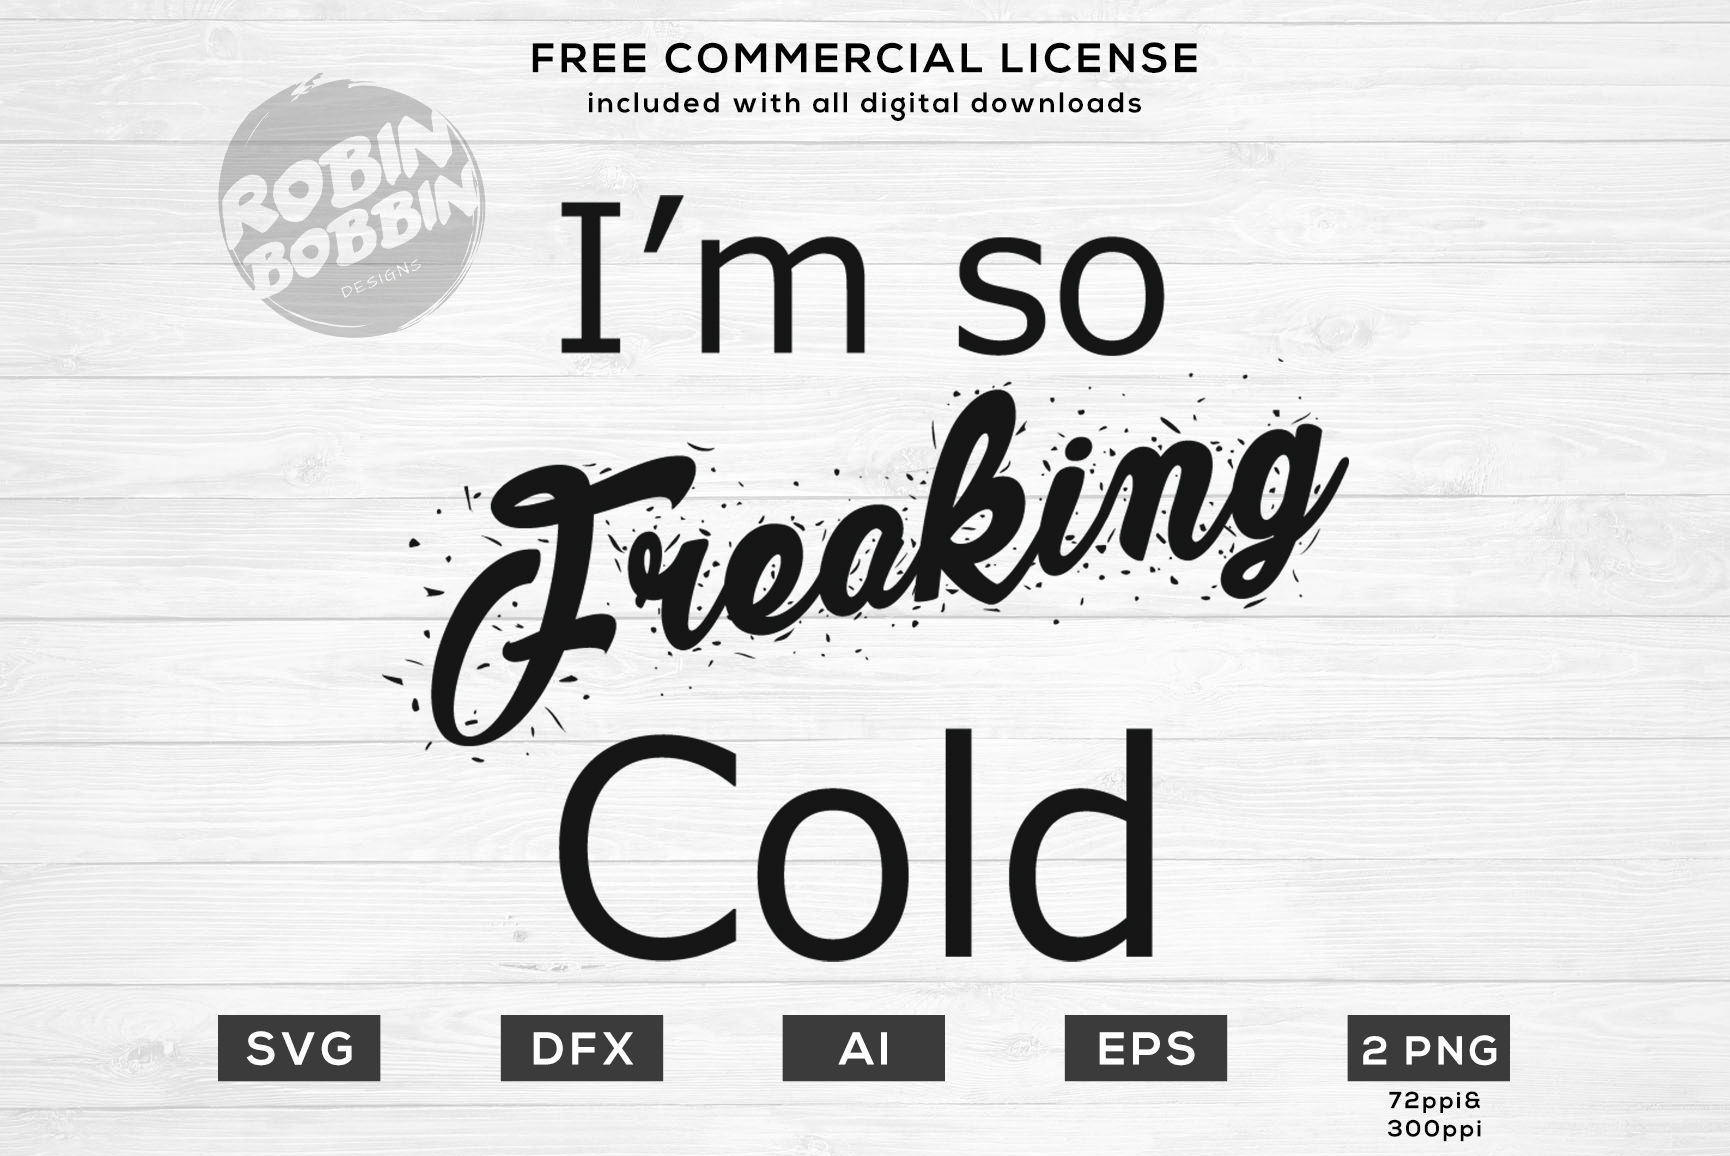 I'm so Freaking Cold Design for T-Shirt, Hoodies, Mugs example image 1